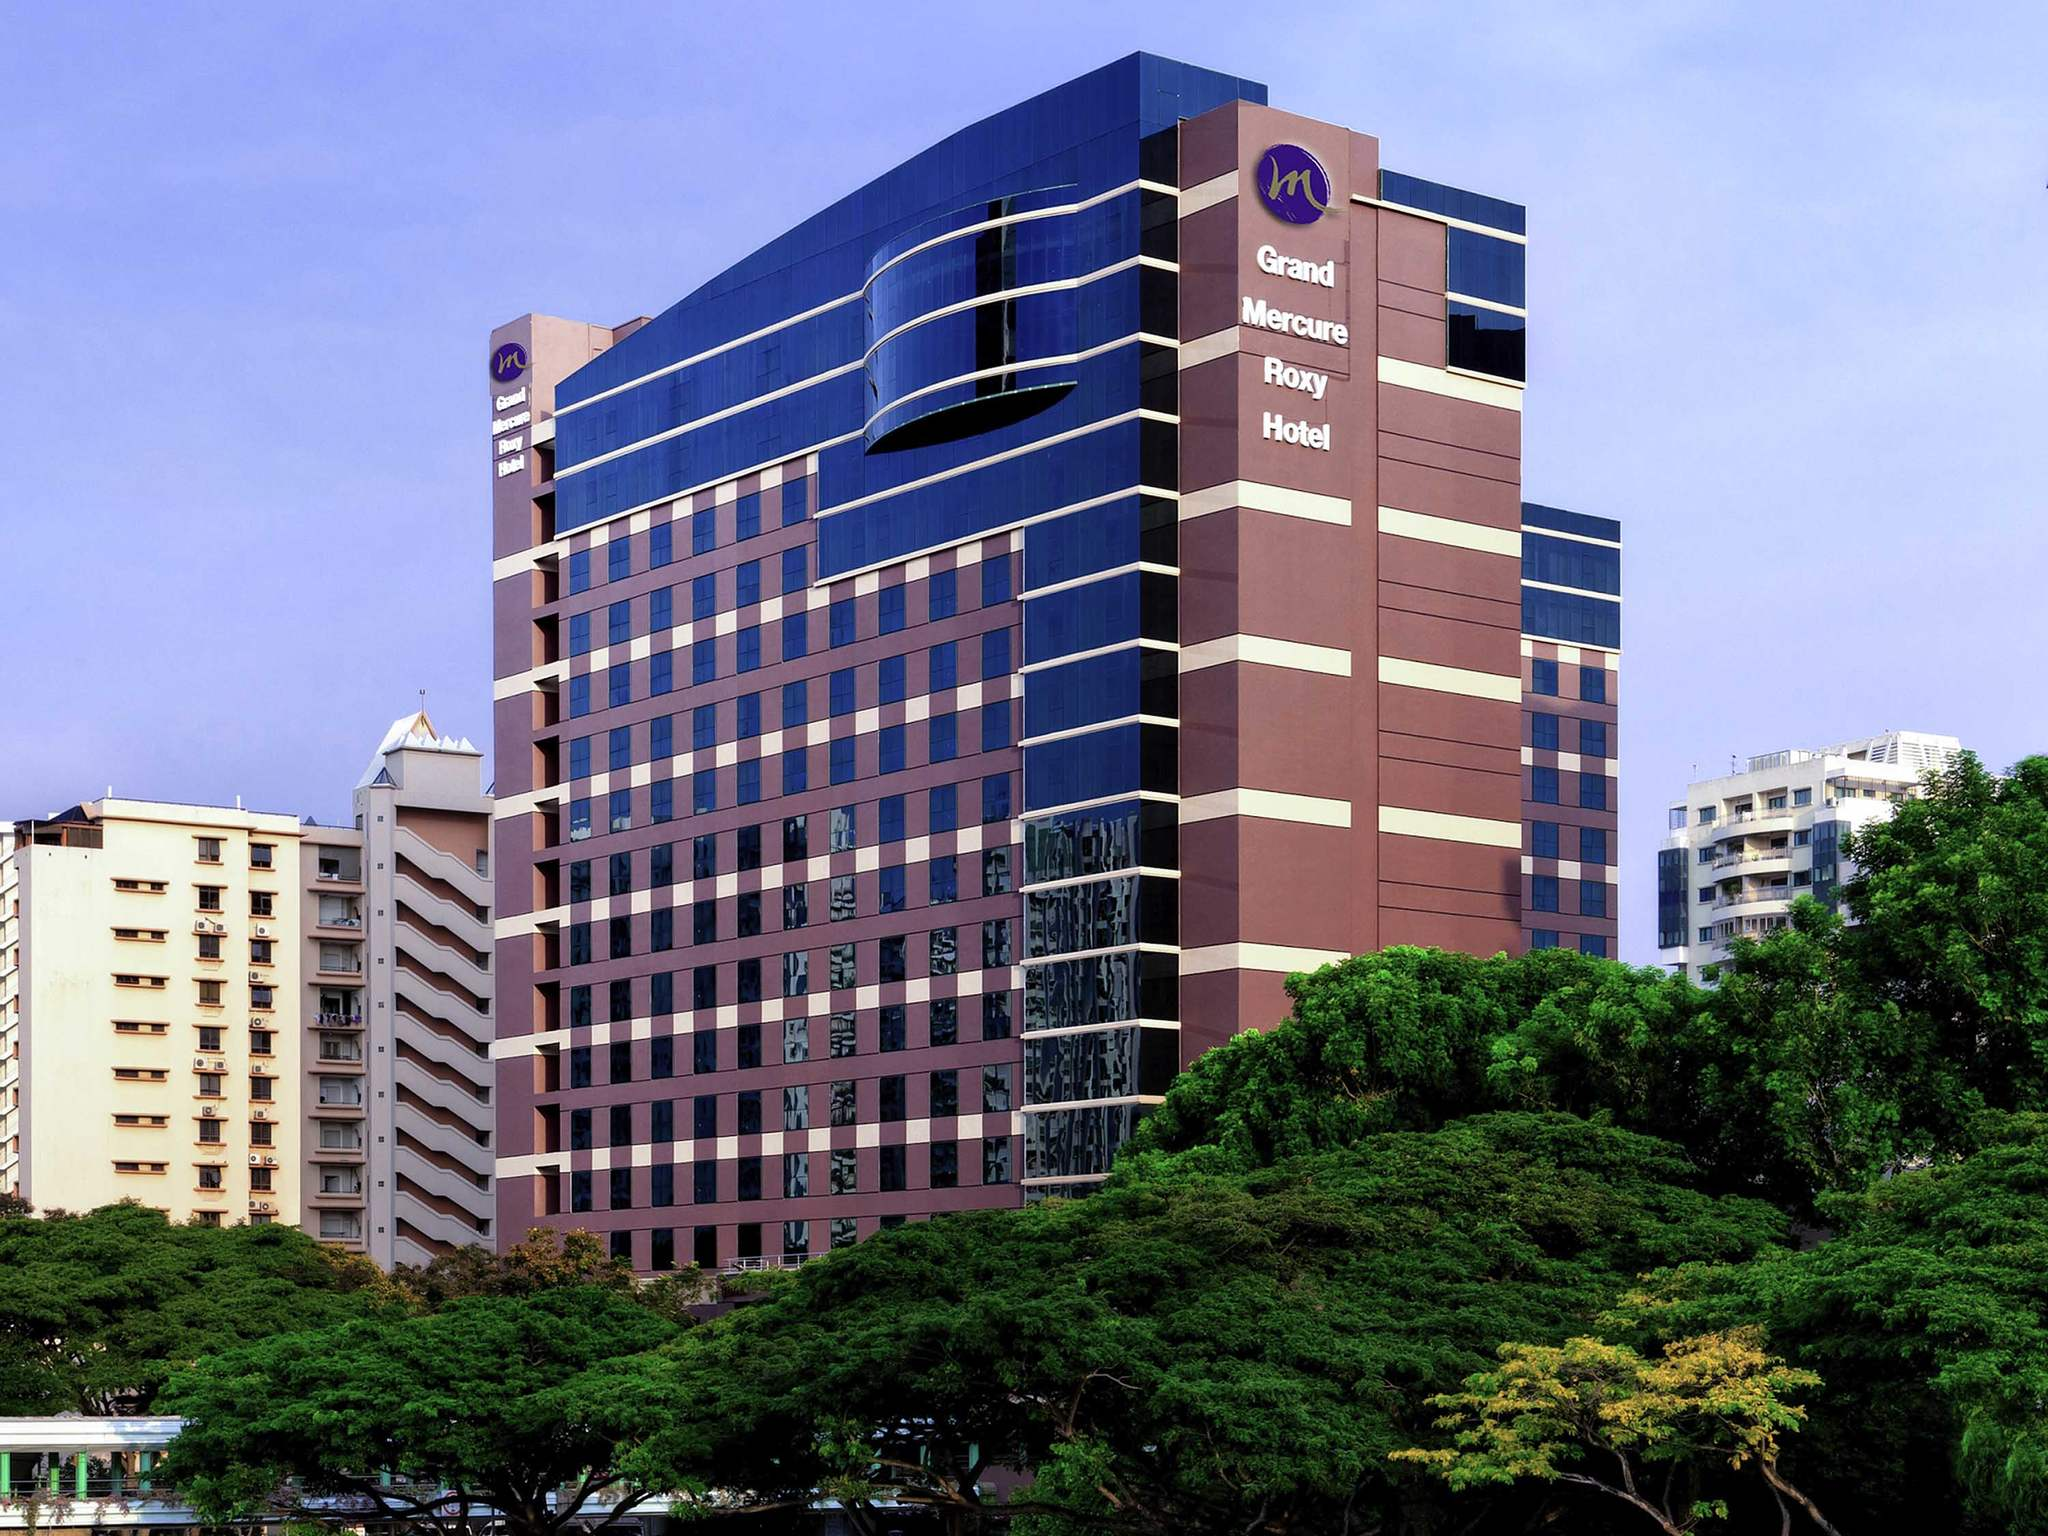 Hotel – Grand Mercure Singapore Roxy